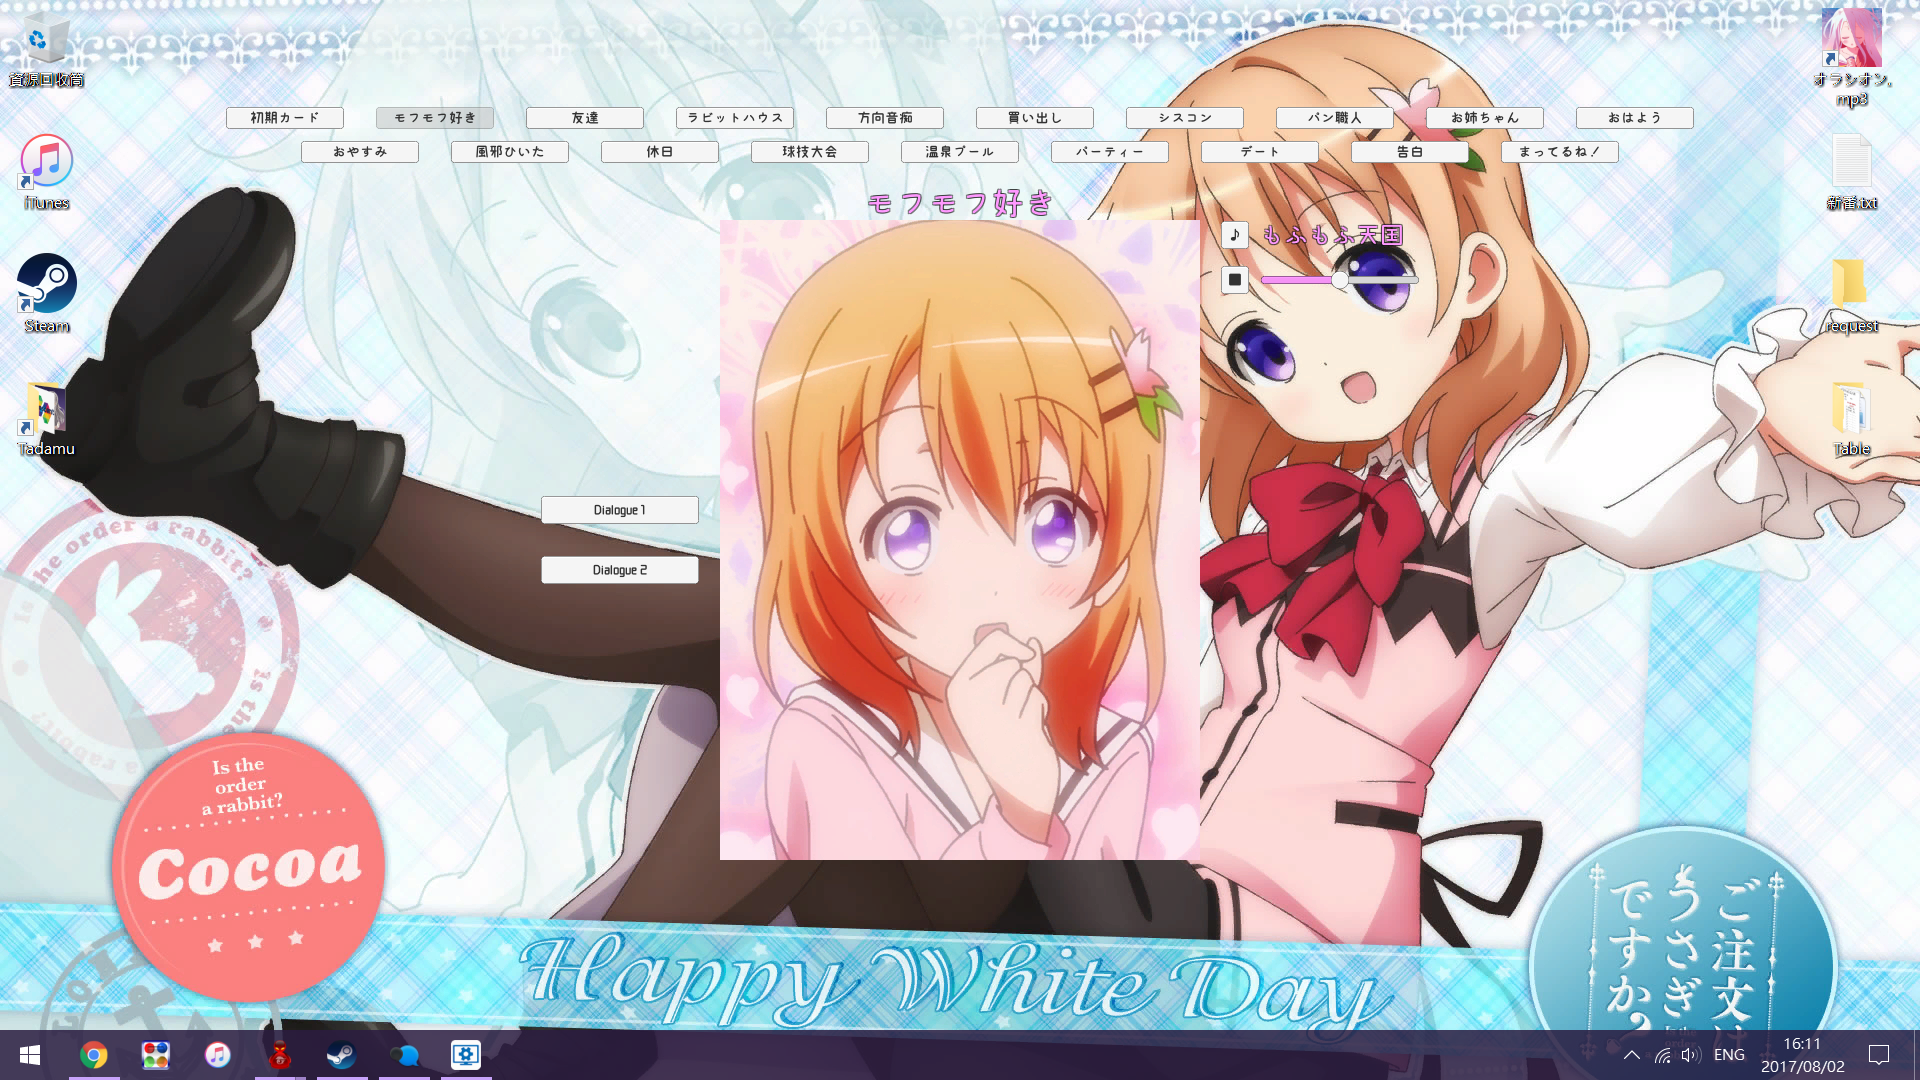 Wallpaper Engine - GochiUsa - Cocoa interactive wallpaper